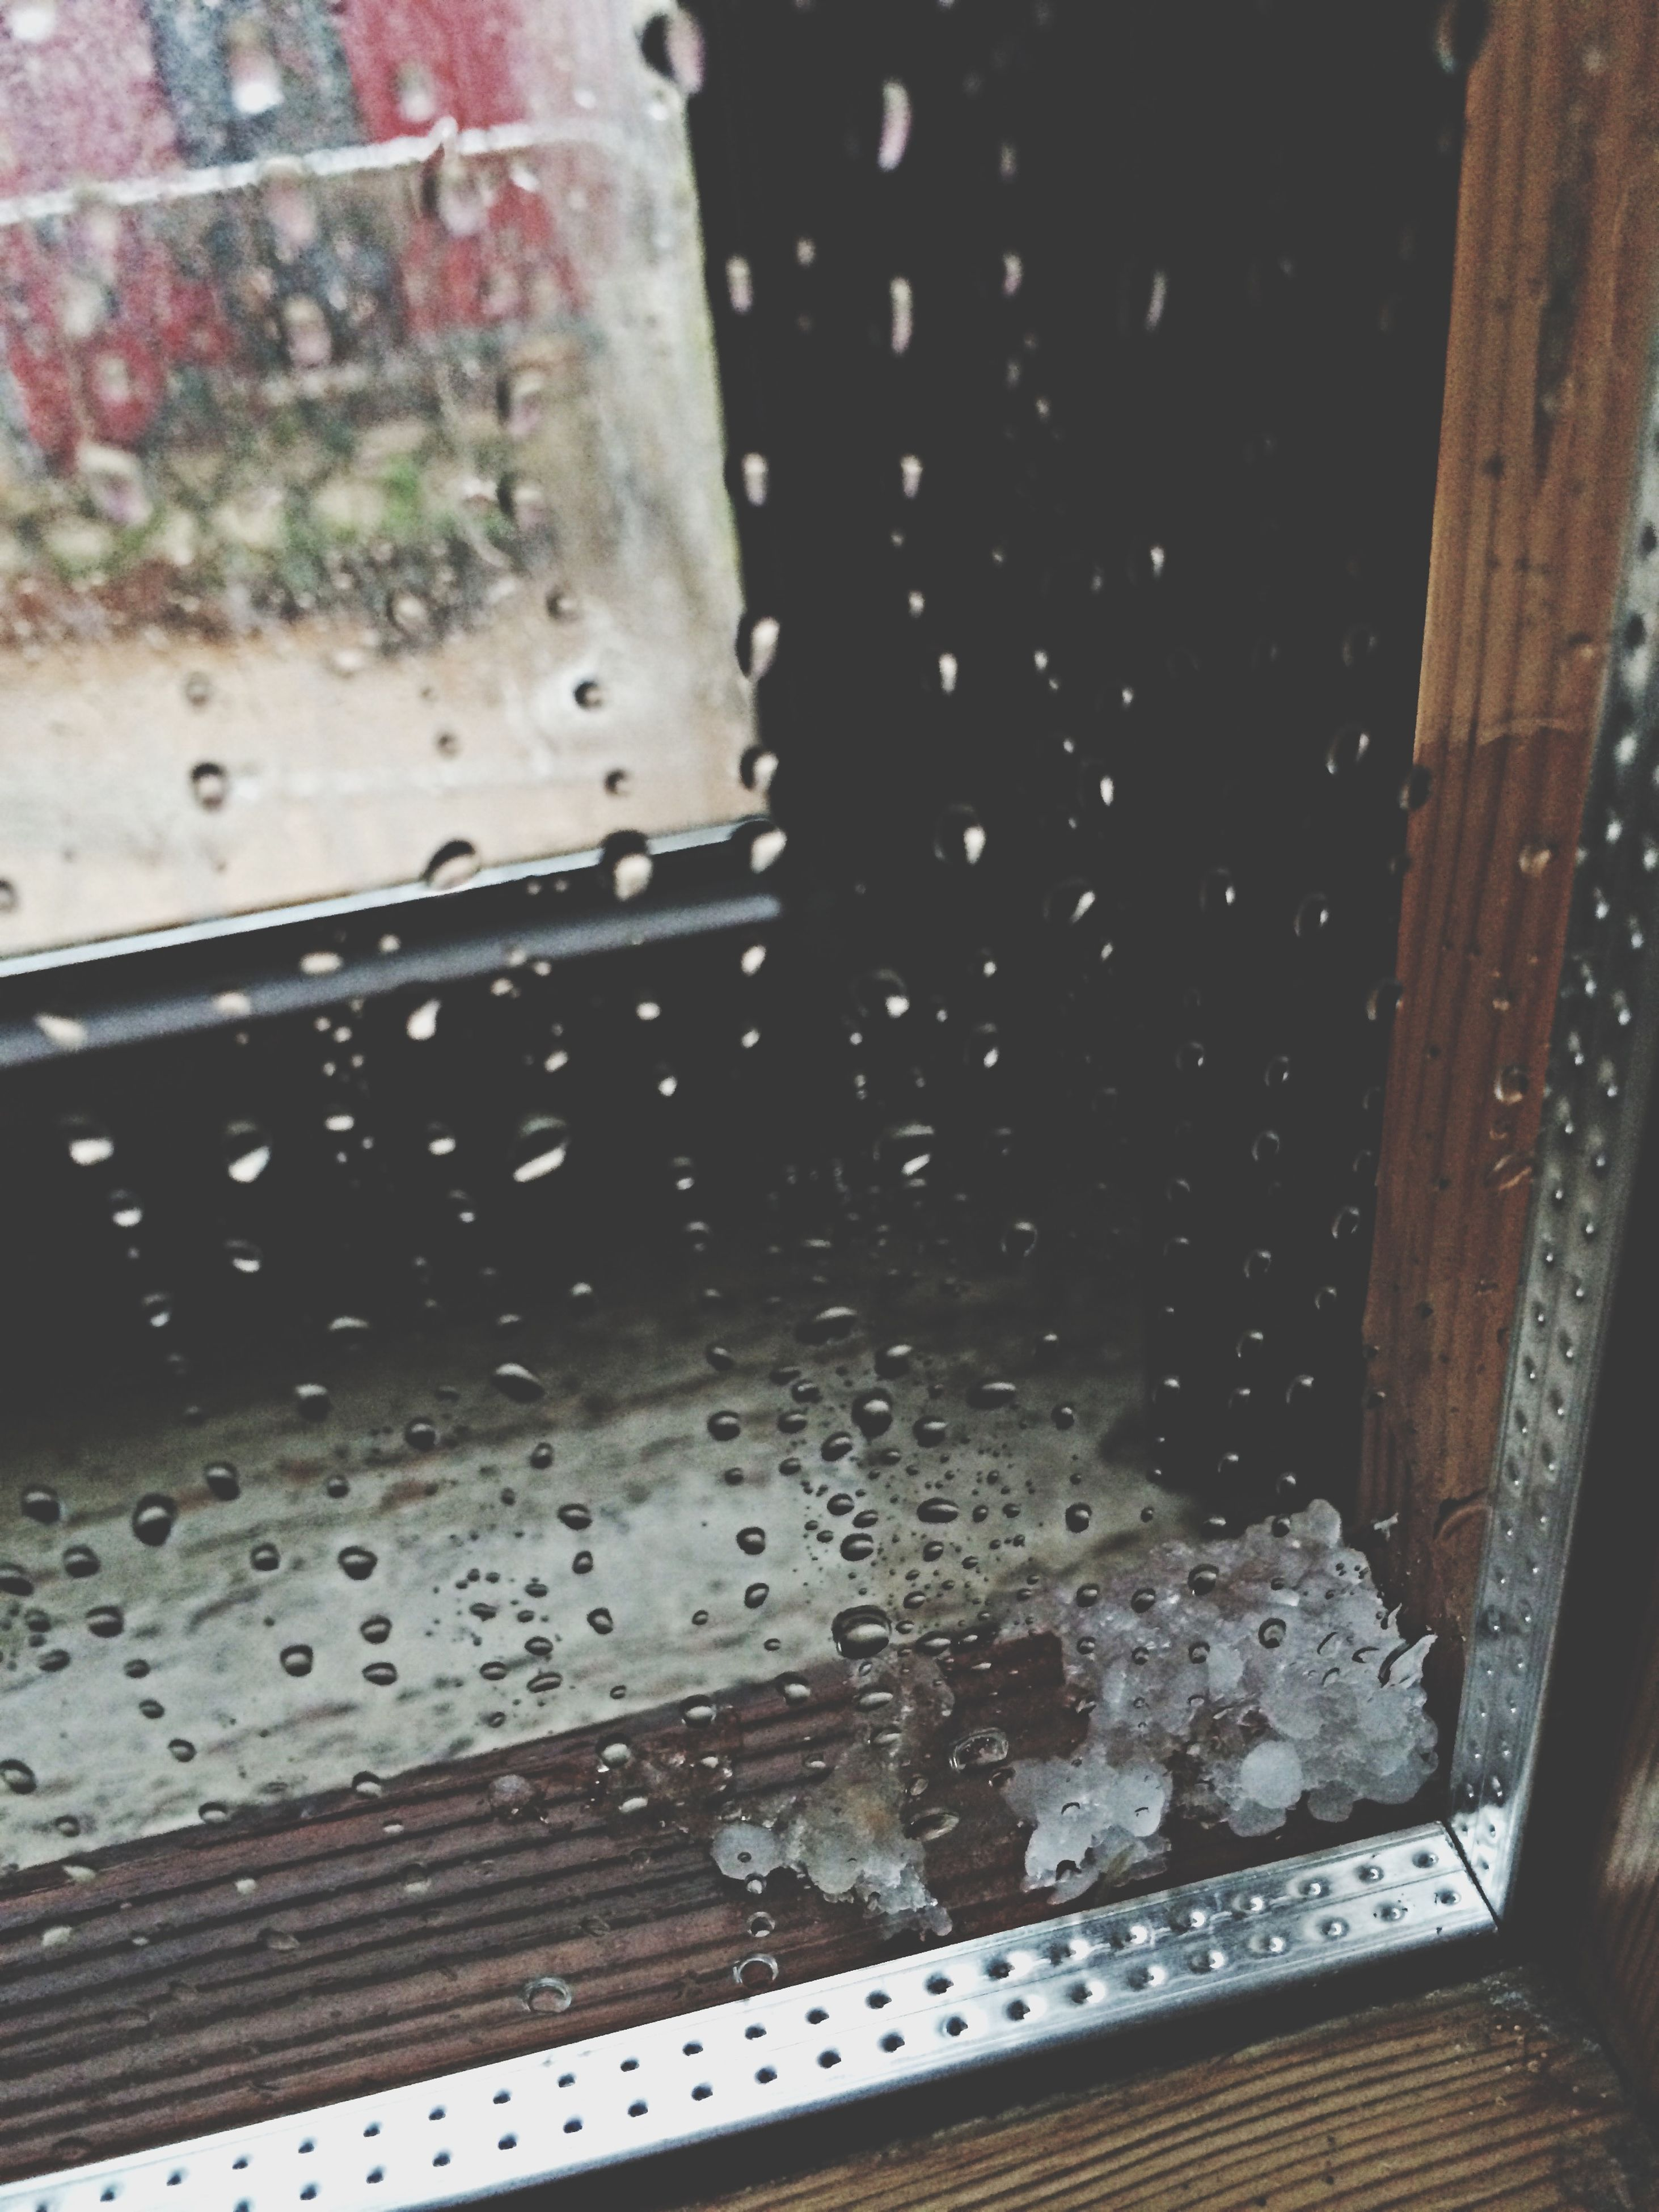 window, indoors, glass - material, wet, season, drop, transparent, rain, water, architecture, built structure, weather, building exterior, glass, raindrop, cold temperature, close-up, no people, day, full frame